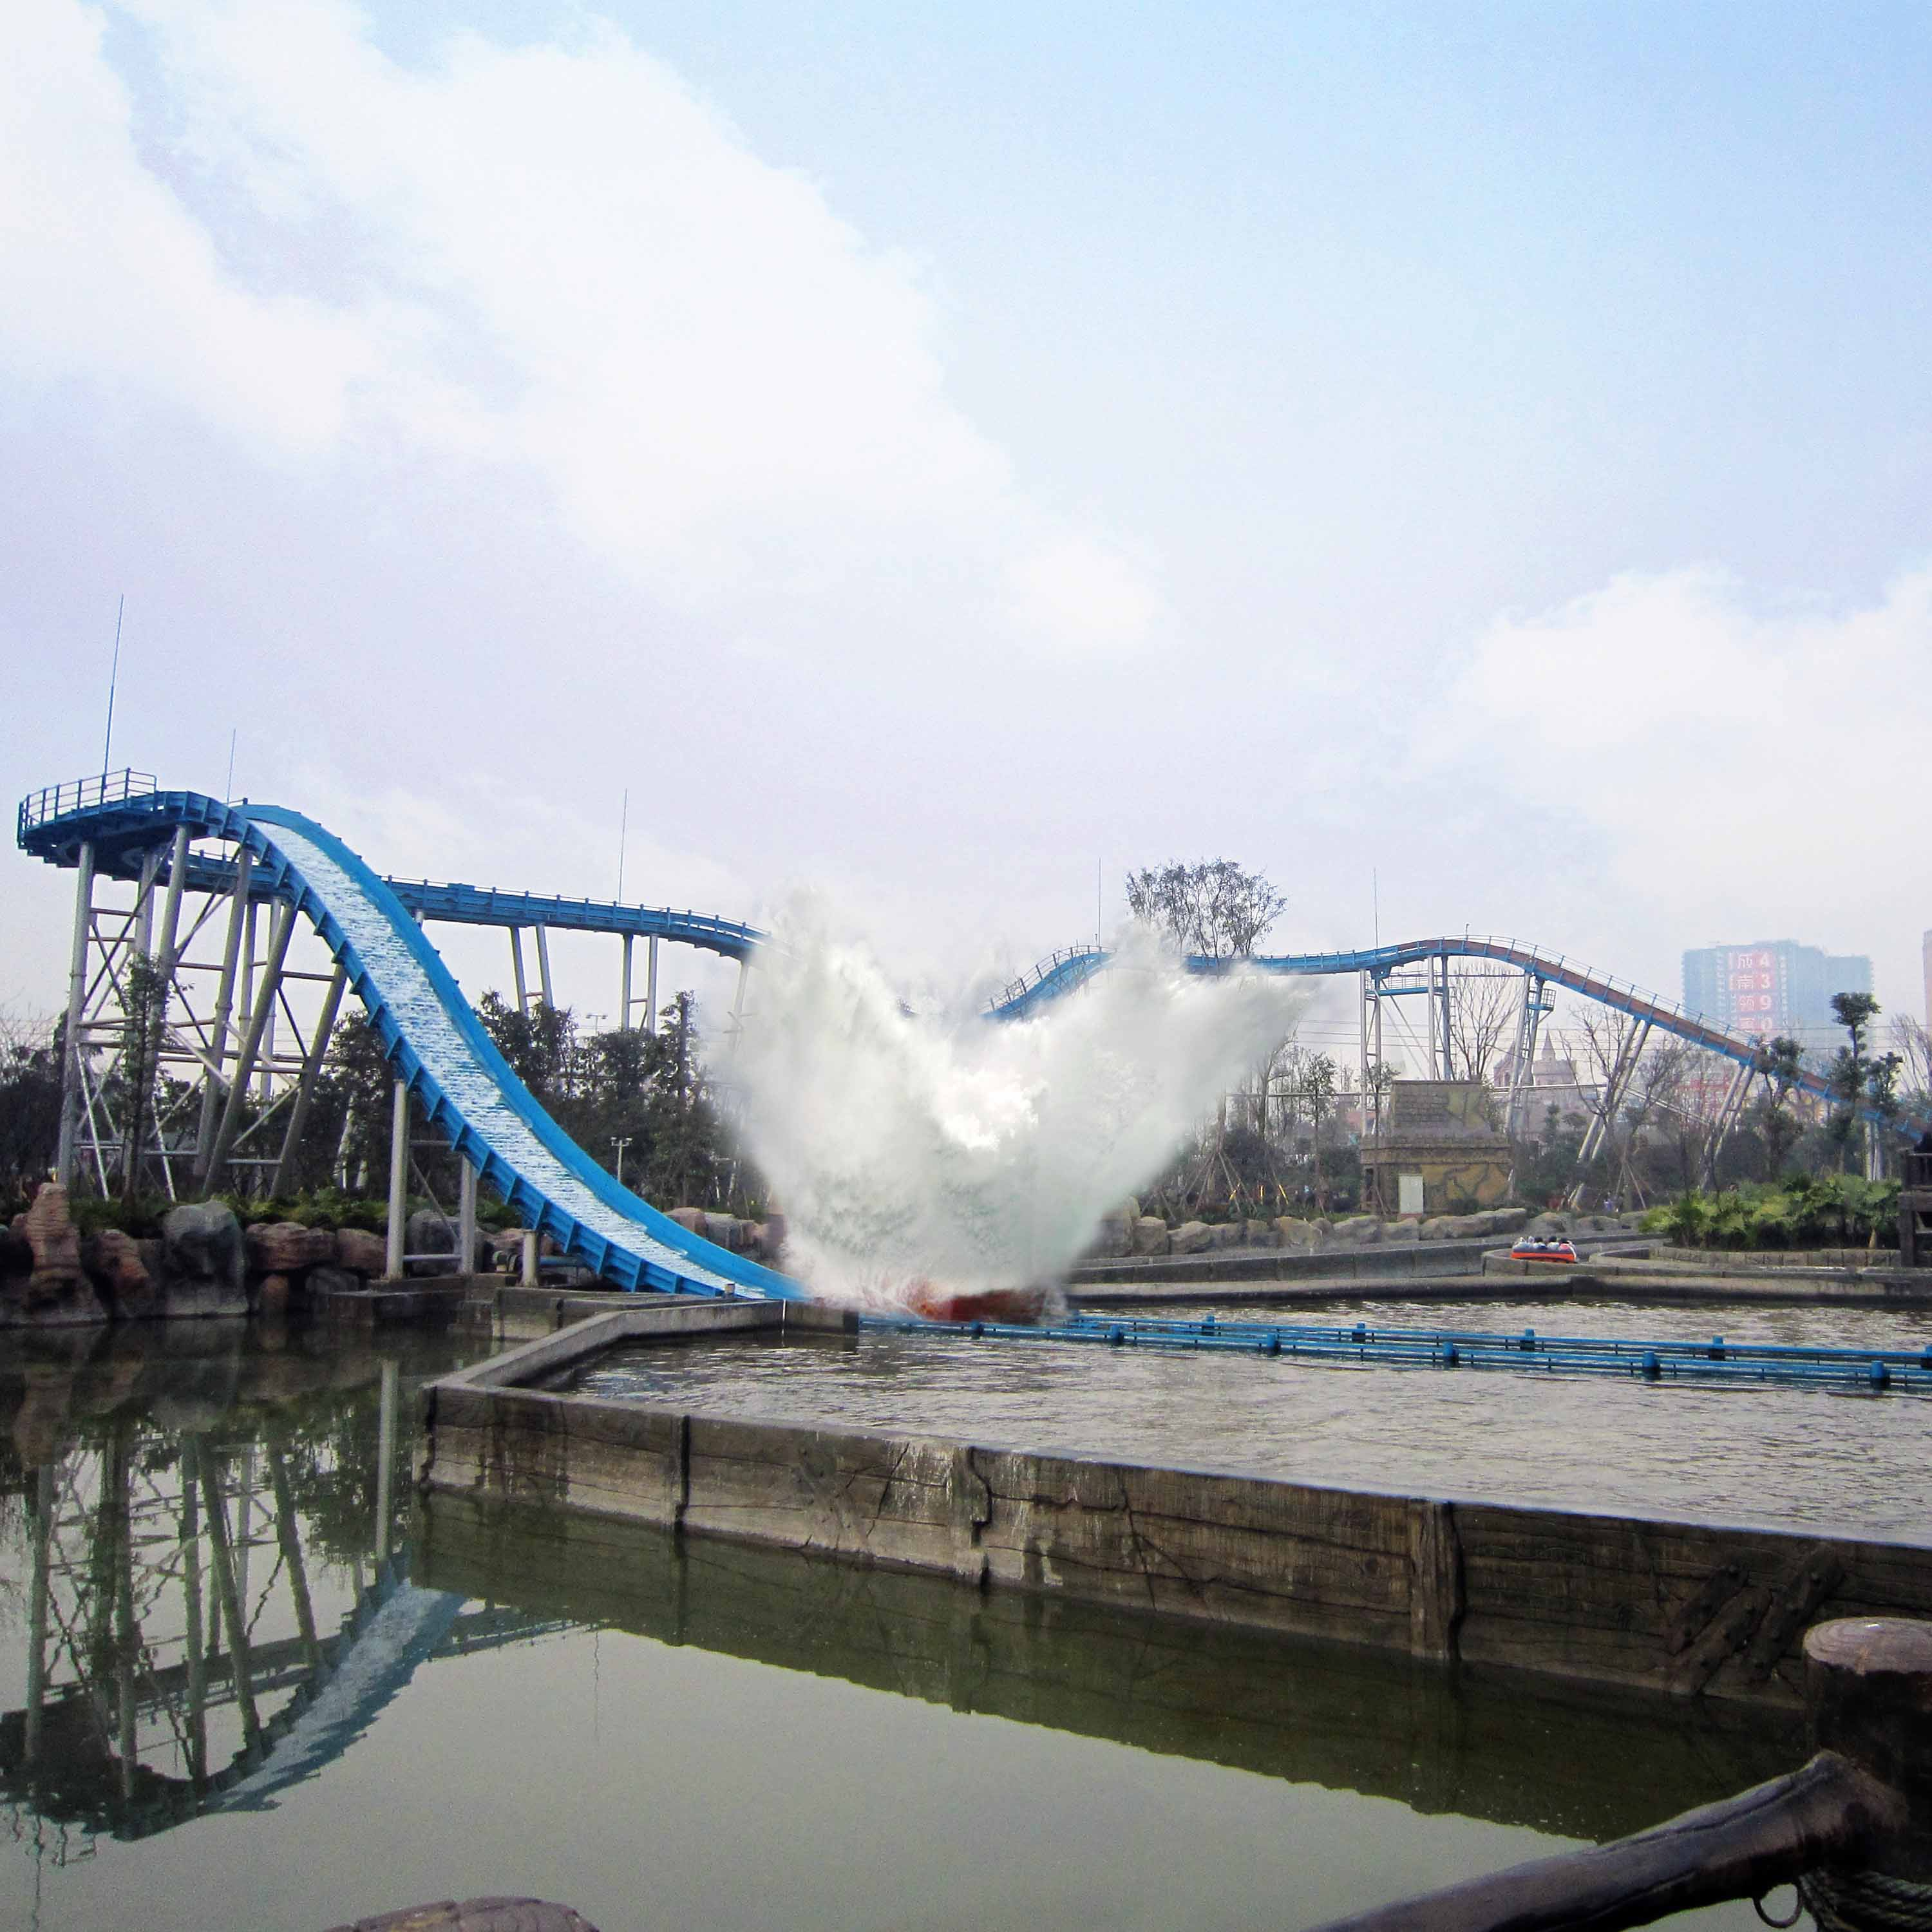 Jinma Rides Bulk buy OEM log flume ride for sale for business for sale-1